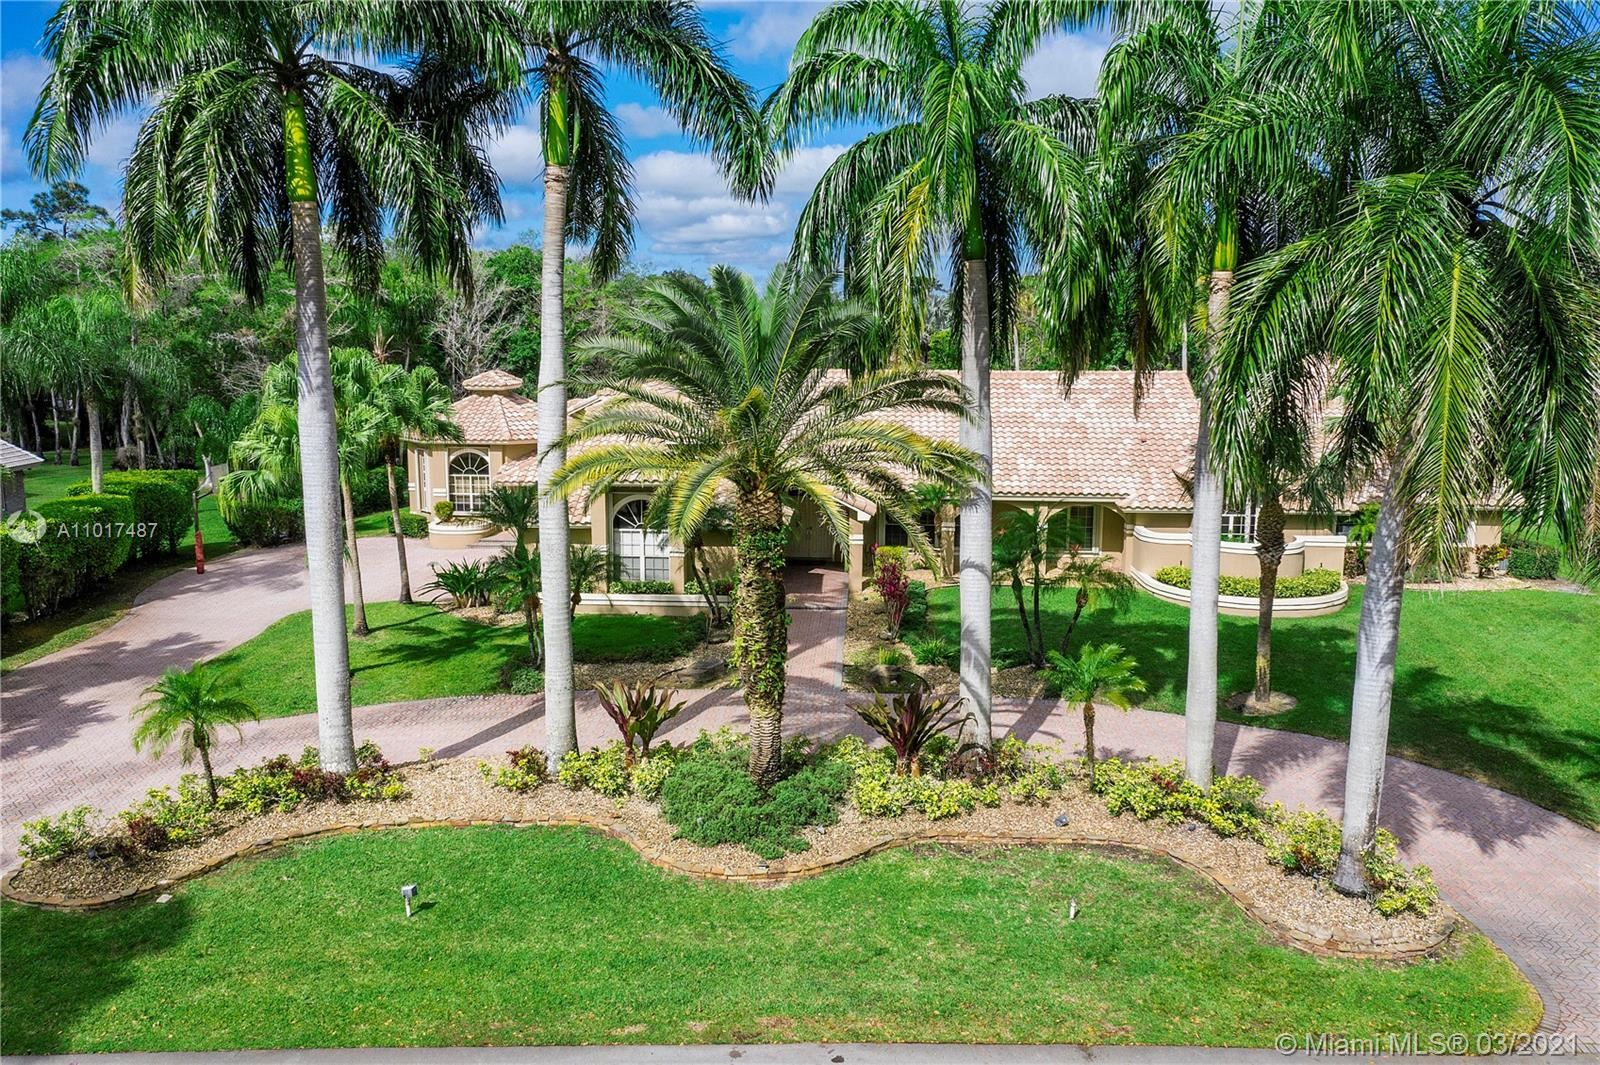 4900 W Leitner Dr, Coral Springs, FL 33067 - #: A11017487